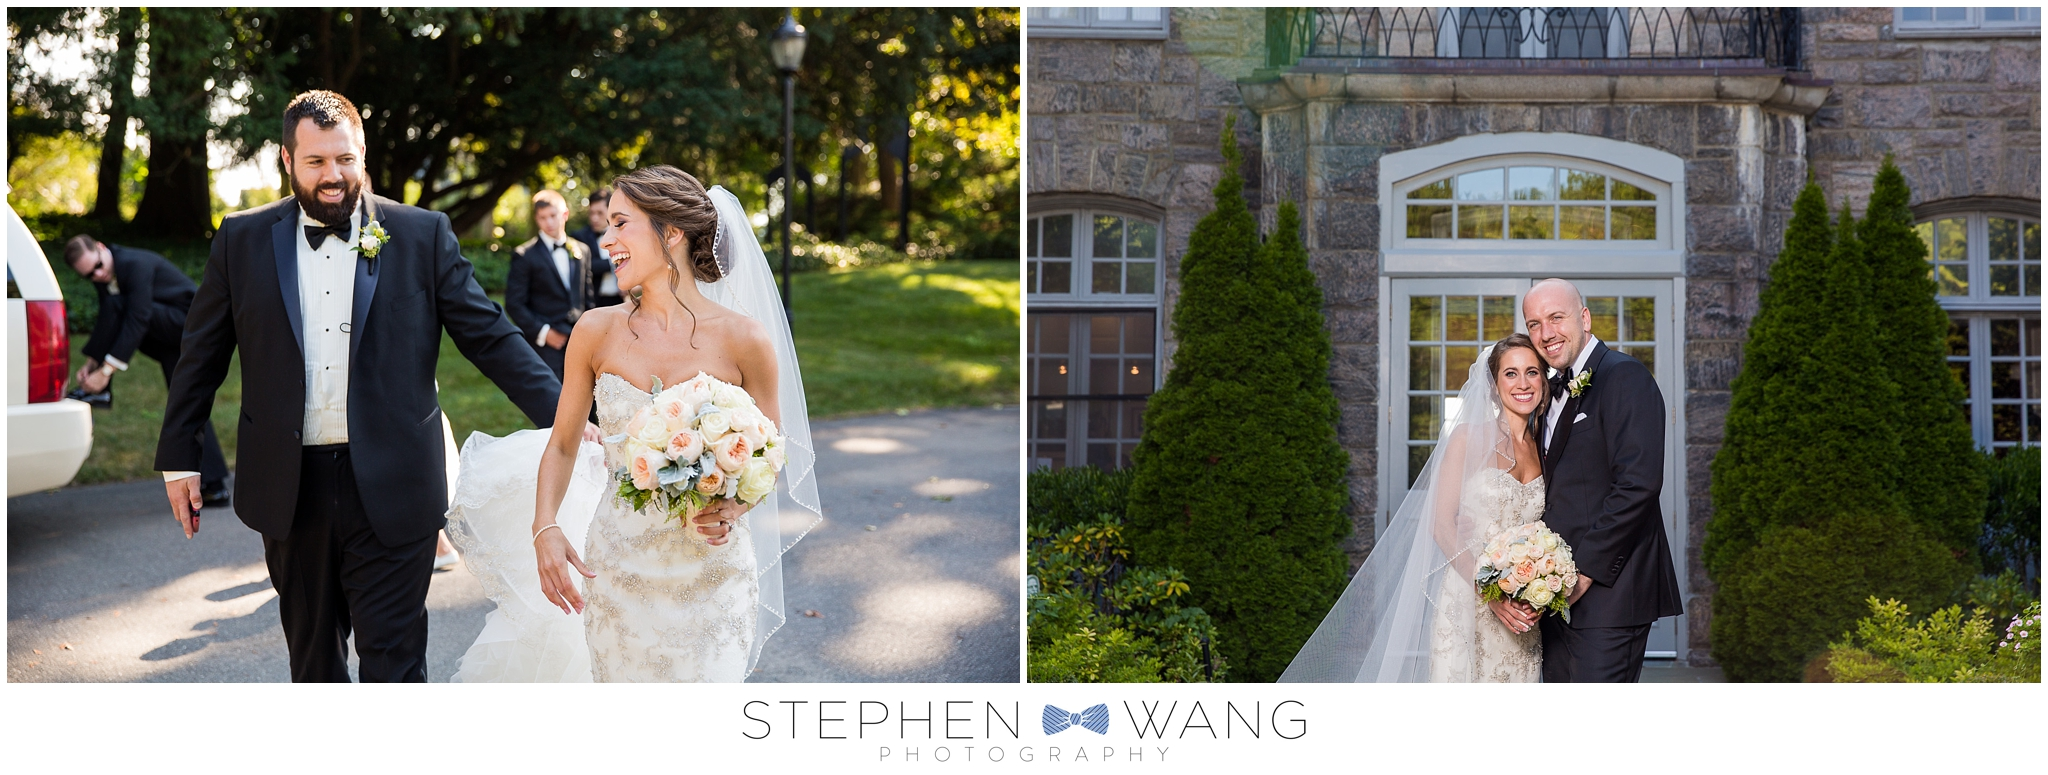 Stephen Wang Photography wedding photographer whitby castle wedding rye ny connecticut photographer philadlephia photographer pennsylvania wedding photographer bride and groom00019.jpg